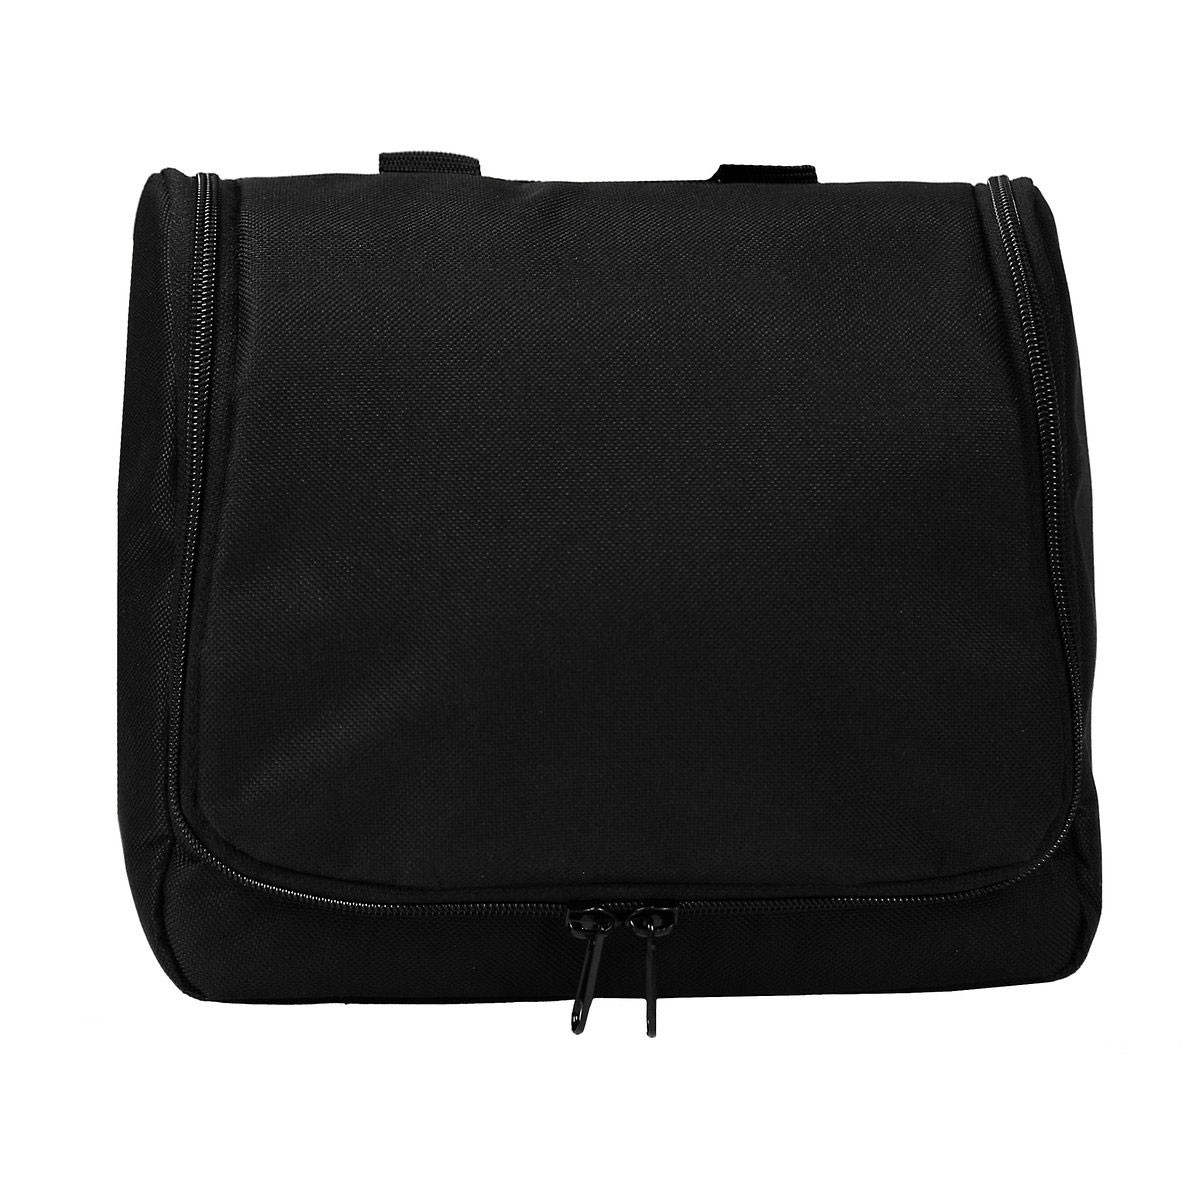 Toiletbag in Black